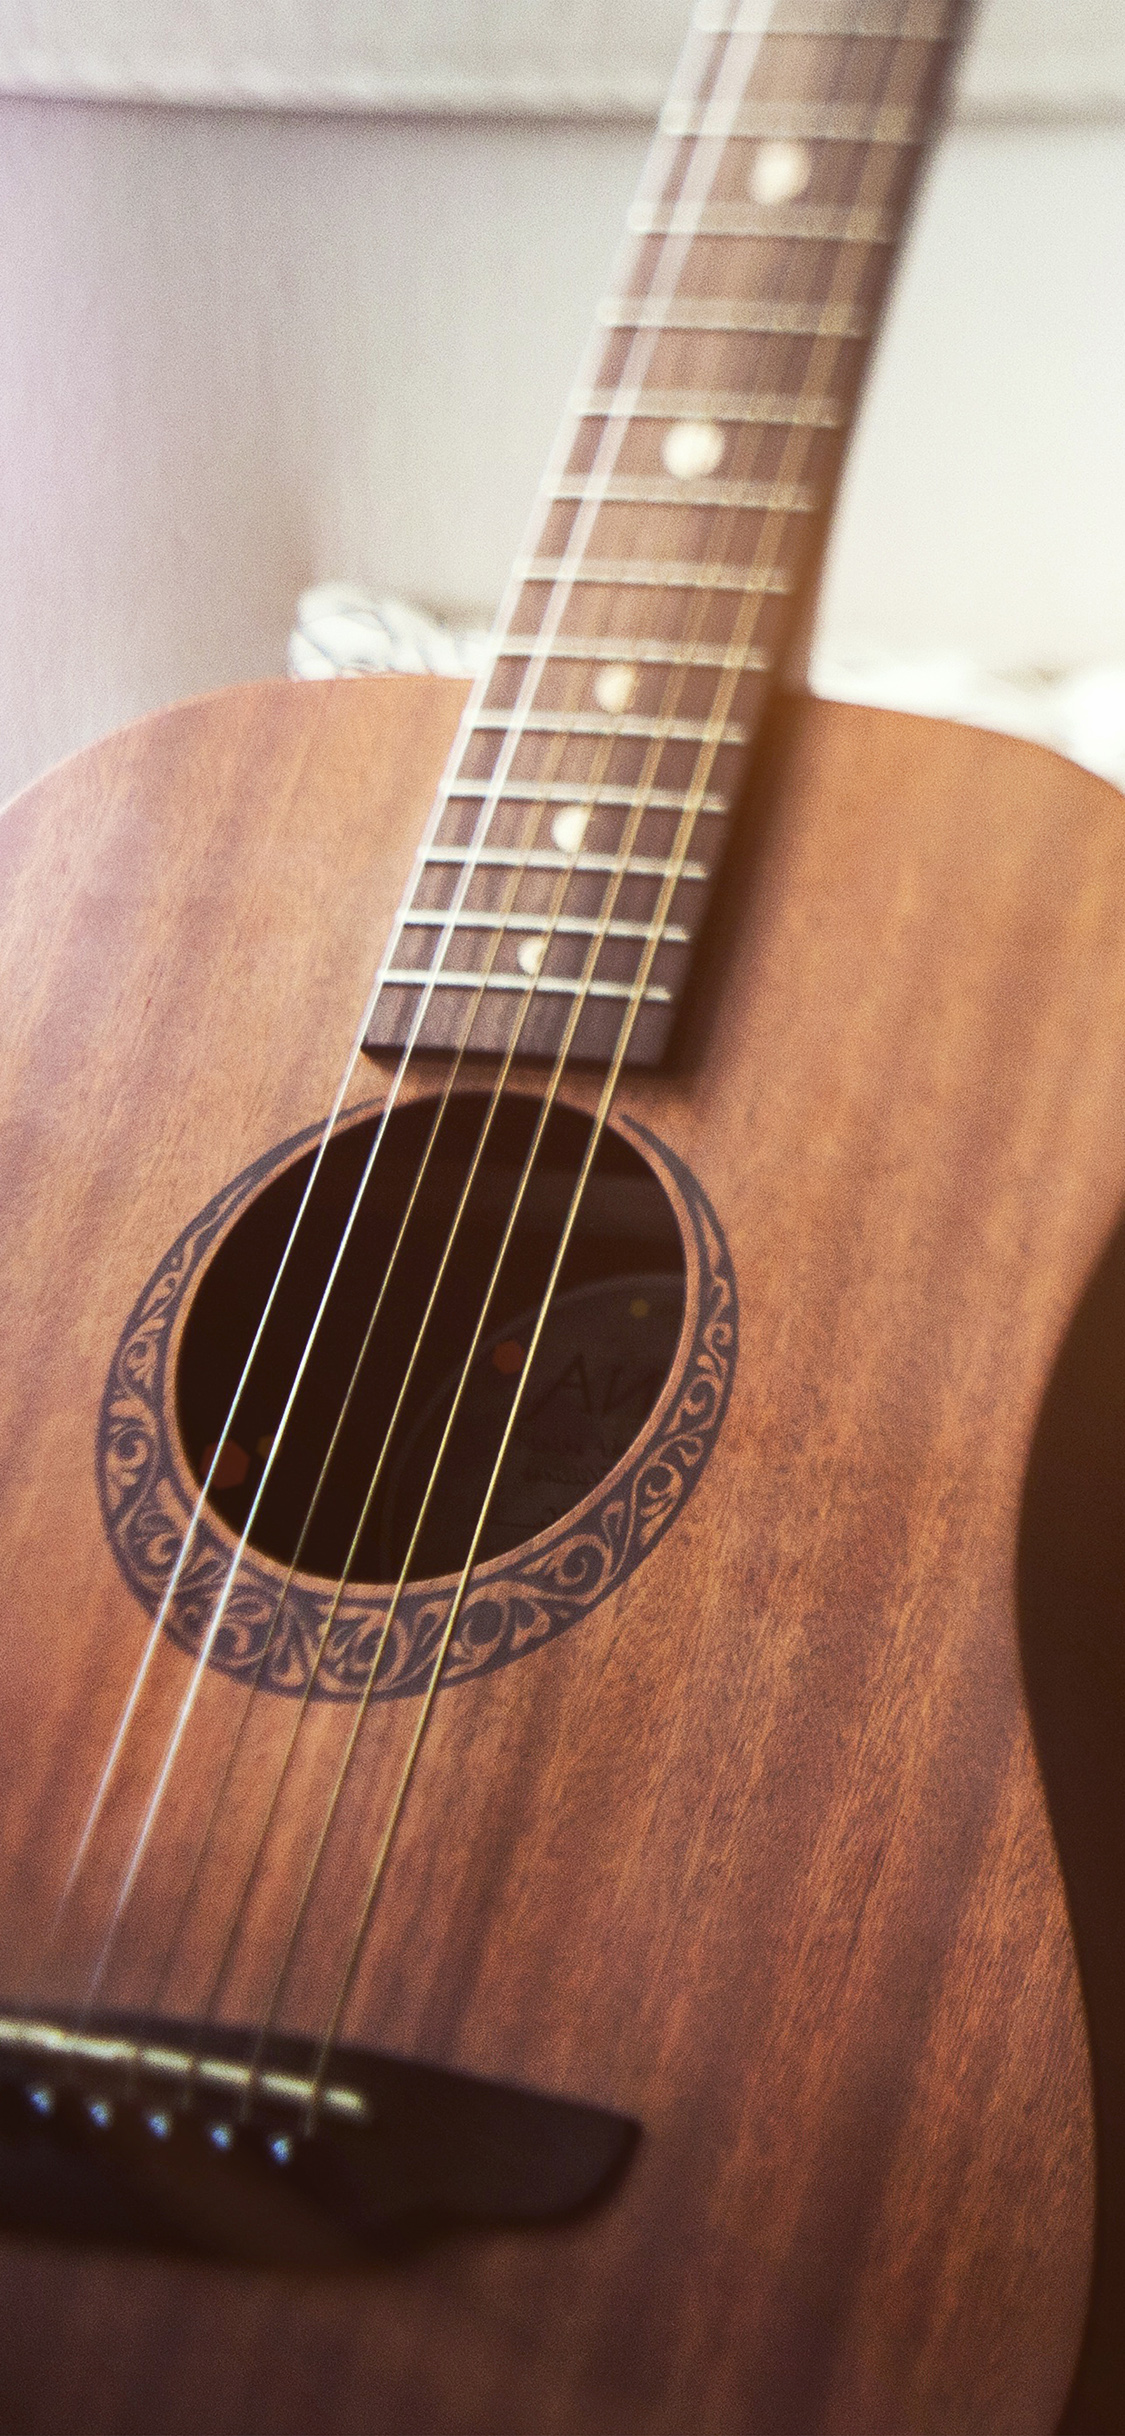 Nf89 Classic Guitar Instrument Music Flare Wallpaper